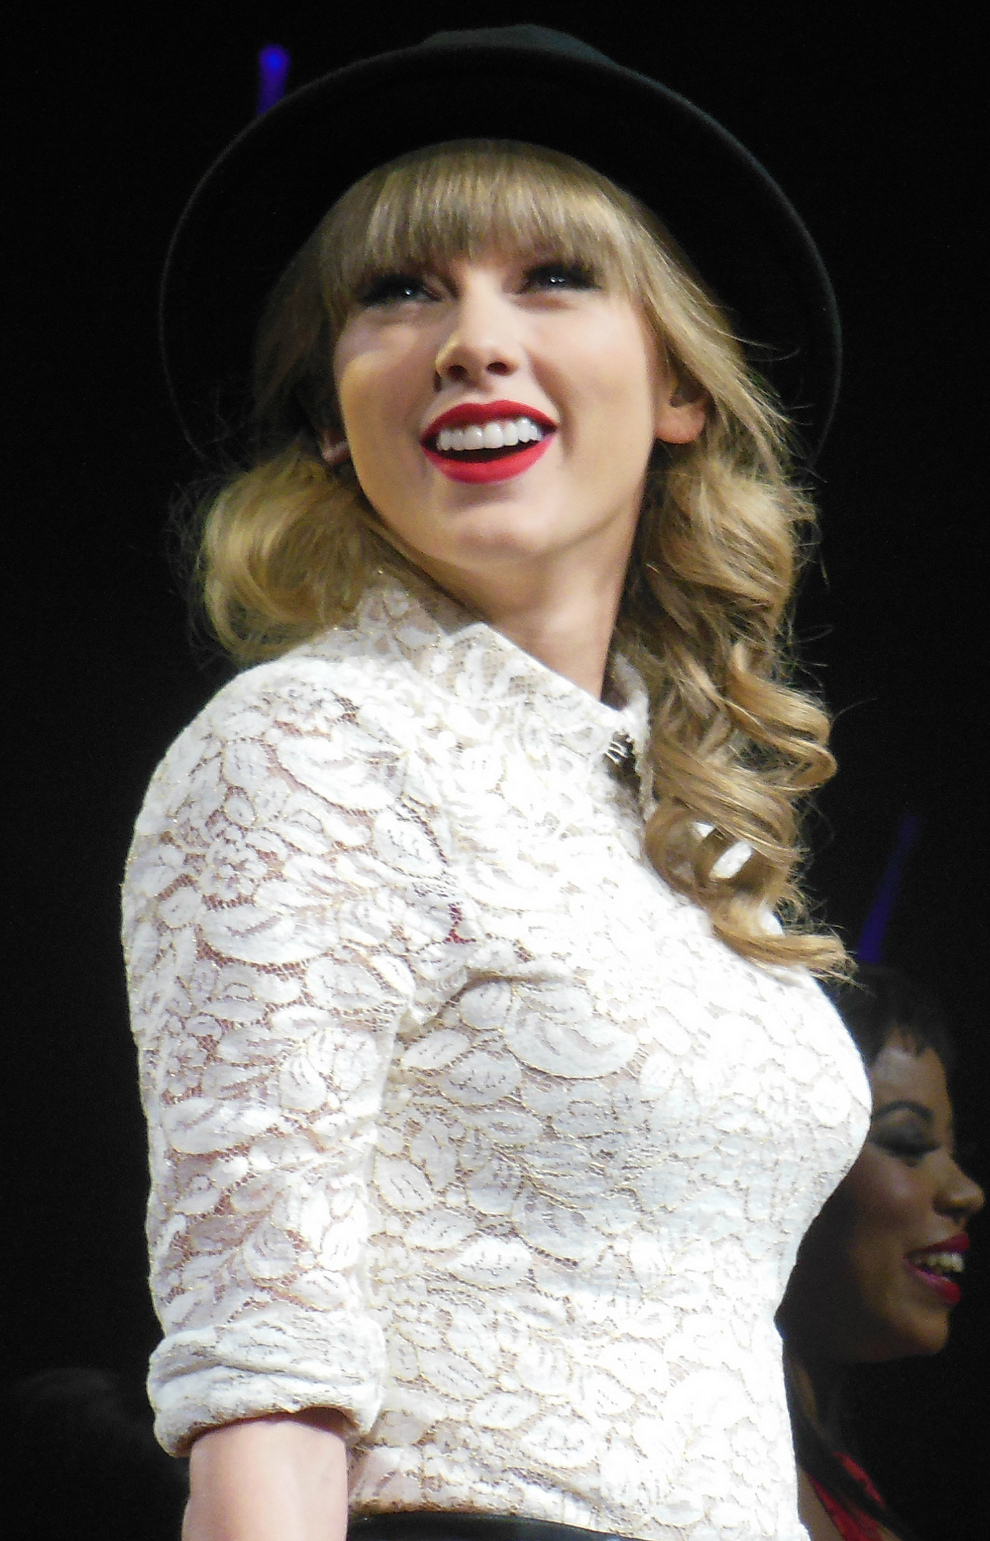 File:Taylor Swift Red Tour 2, 2013.jpg - Wikimedia Commons Taylor Swift